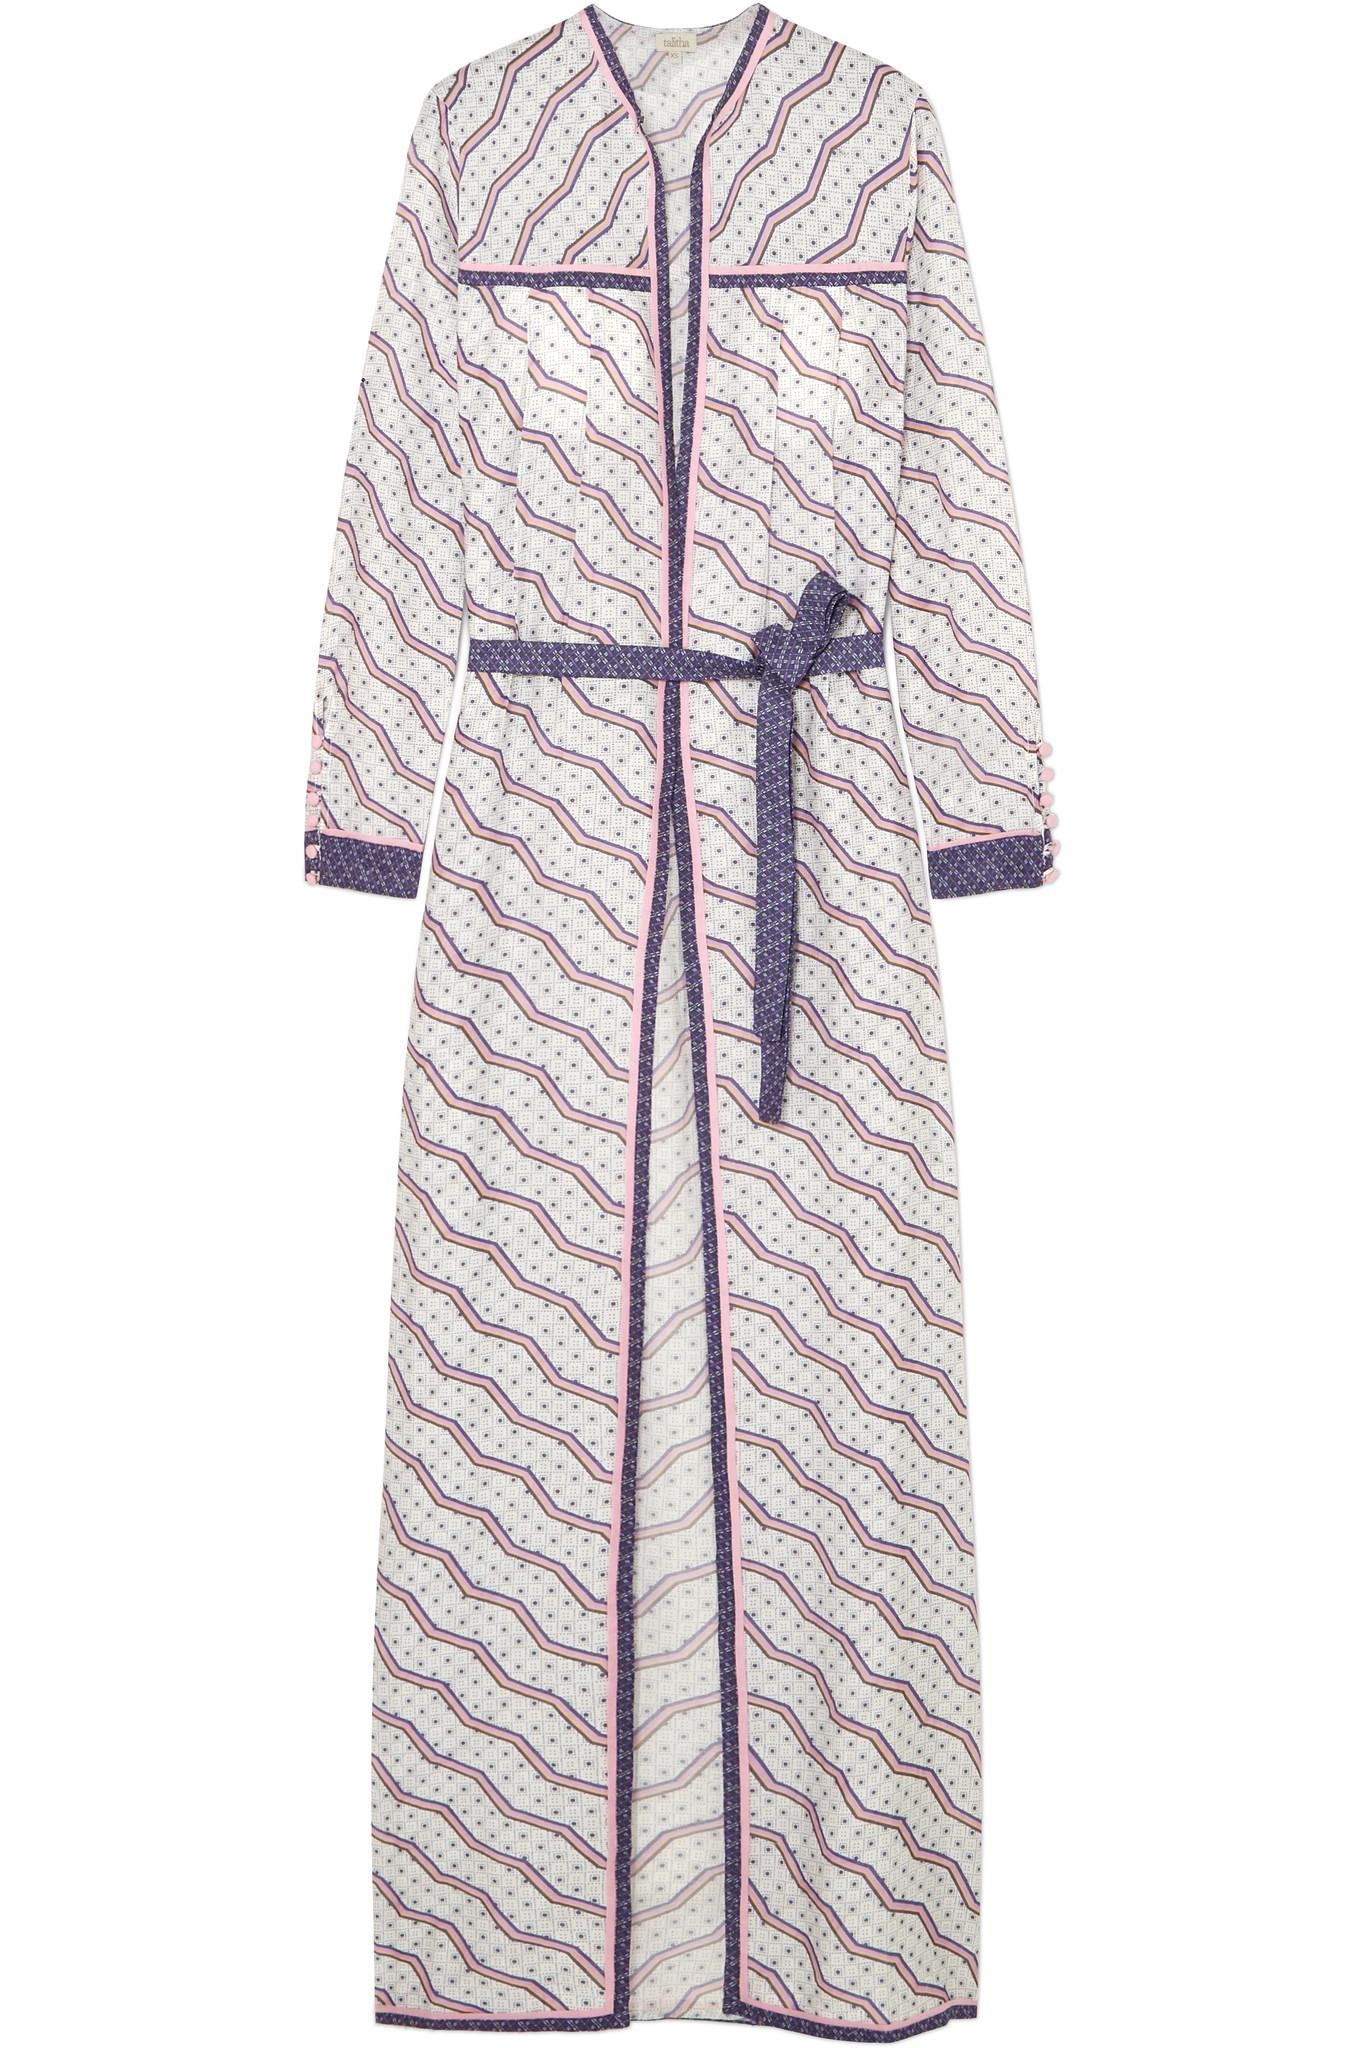 0eaee943d3 Lyst - Talitha Printed Silk And Cotton-blend Robe in Purple